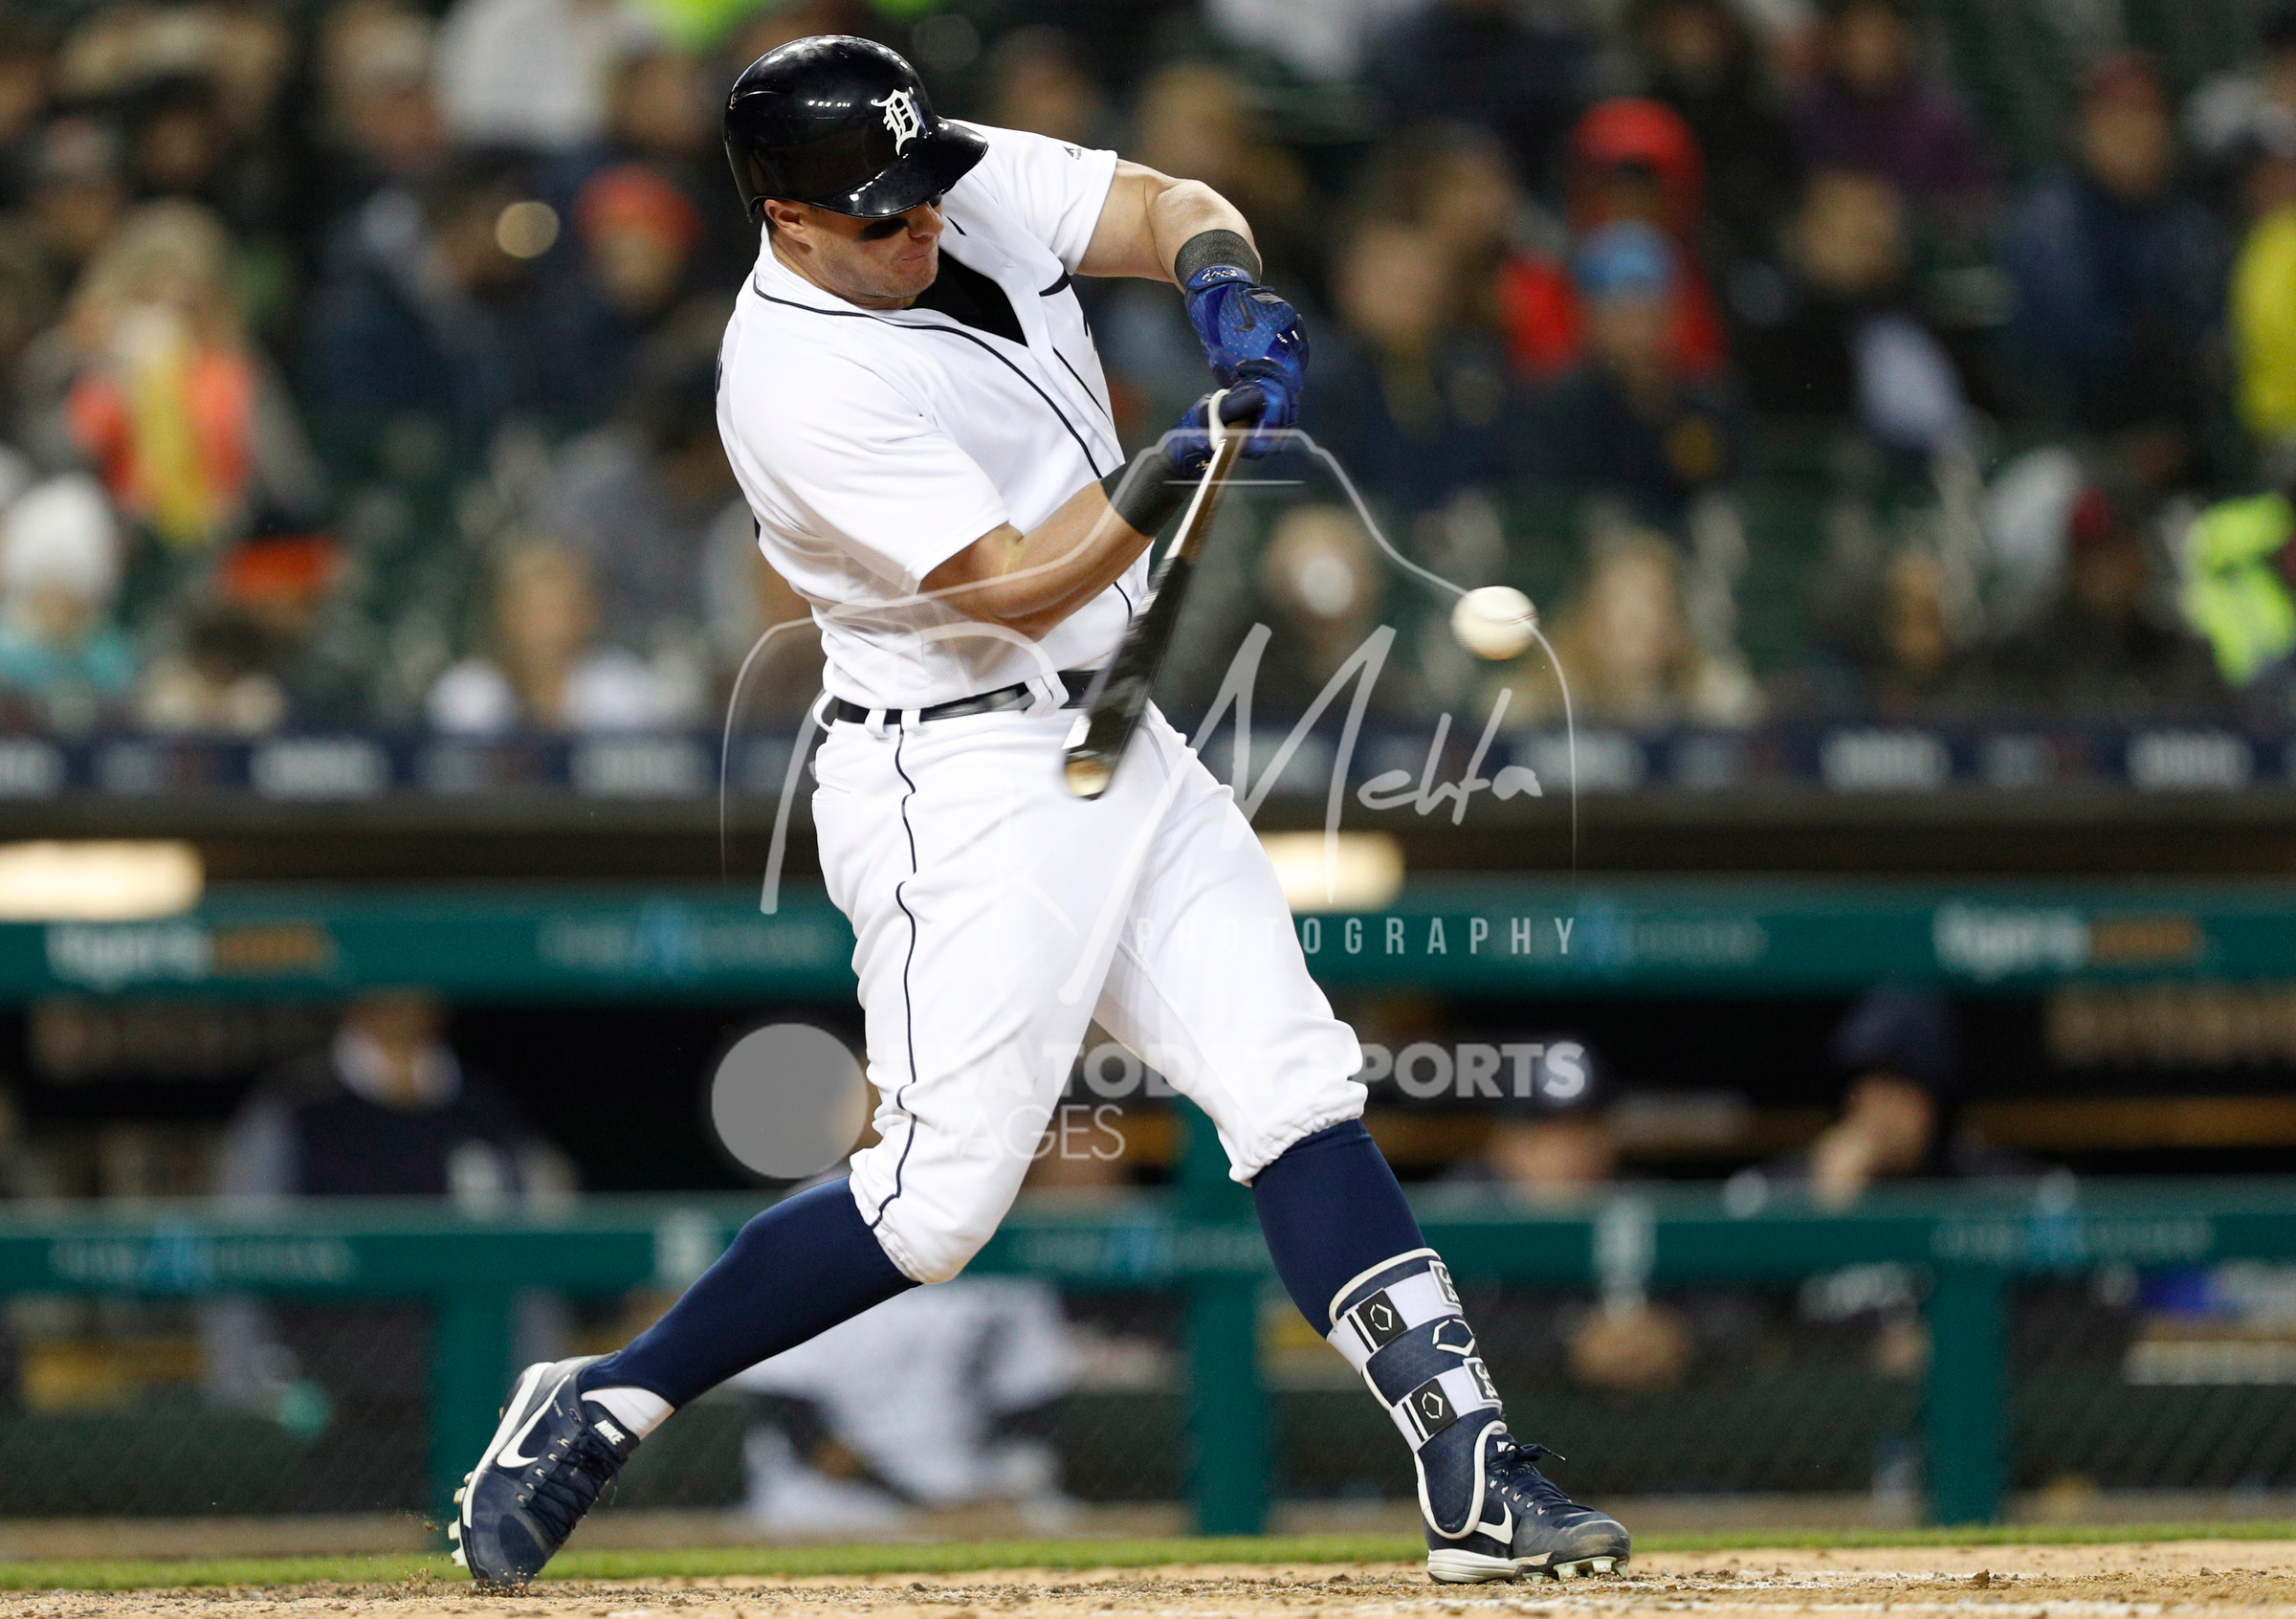 Apr 13, 2018; Detroit, MI, USA; Detroit Tigers catcher James McCann (34) hits a solo home run during the fifth inning against the New York Yankees at Comerica Park. Mandatory Credit: Raj Mehta-USA TODAY Sports